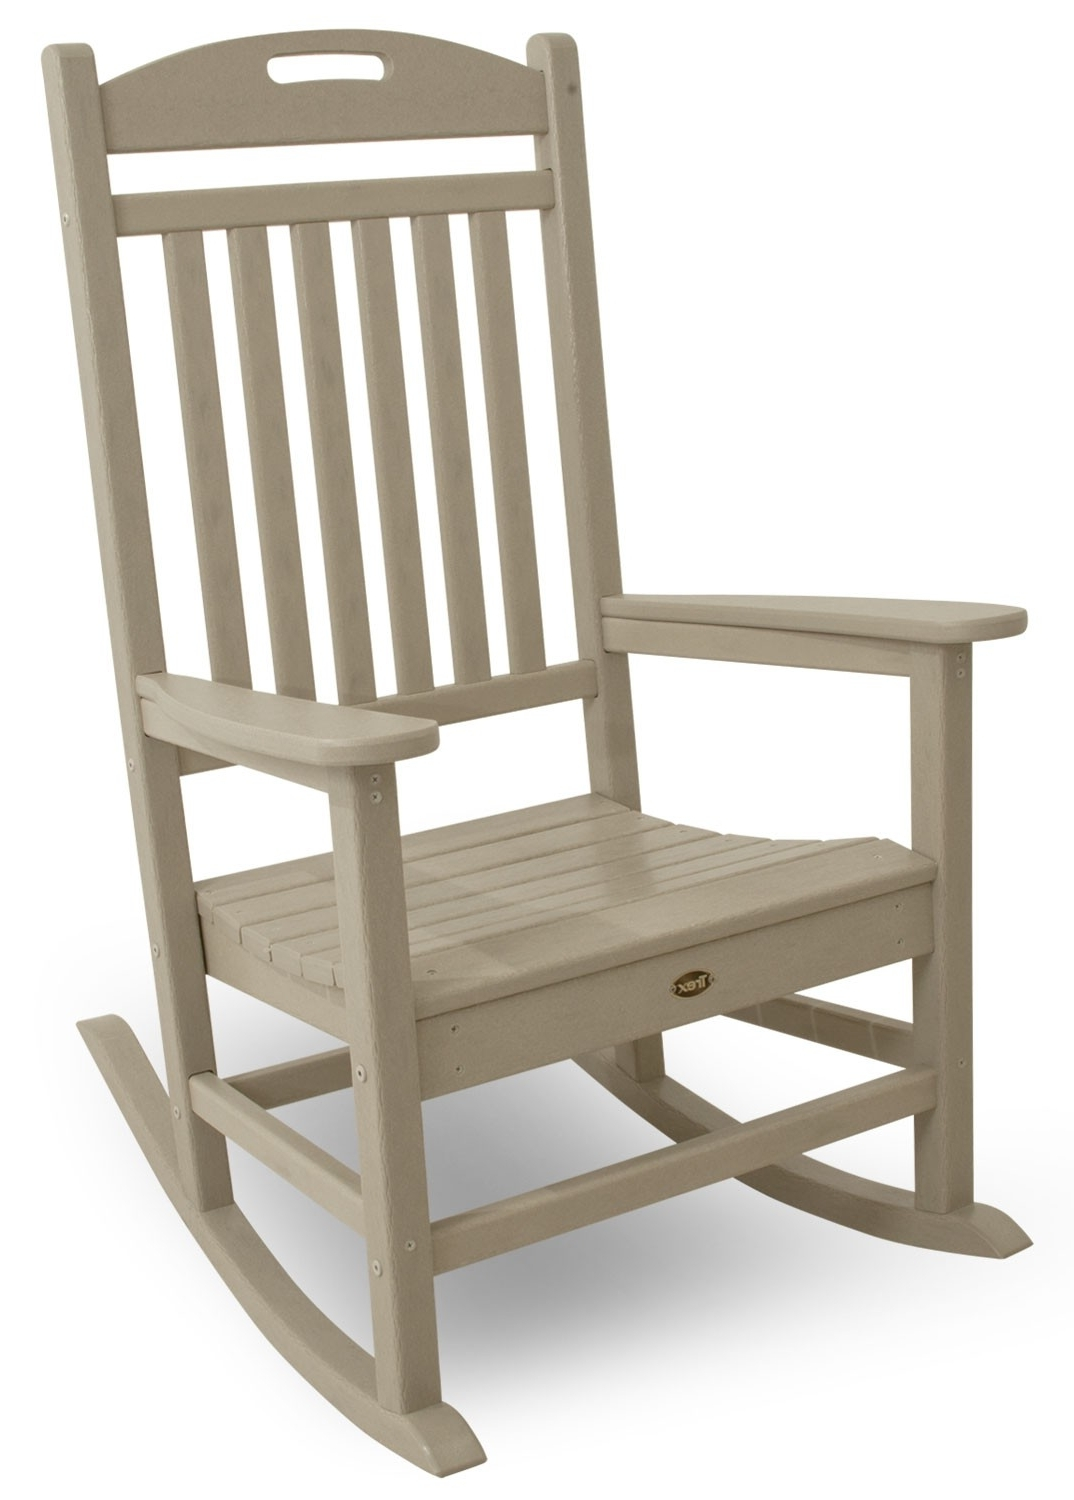 Yacht Club Rocking Chair Pertaining To Newest Patio Rocking Chairs And Gliders (View 7 of 15)